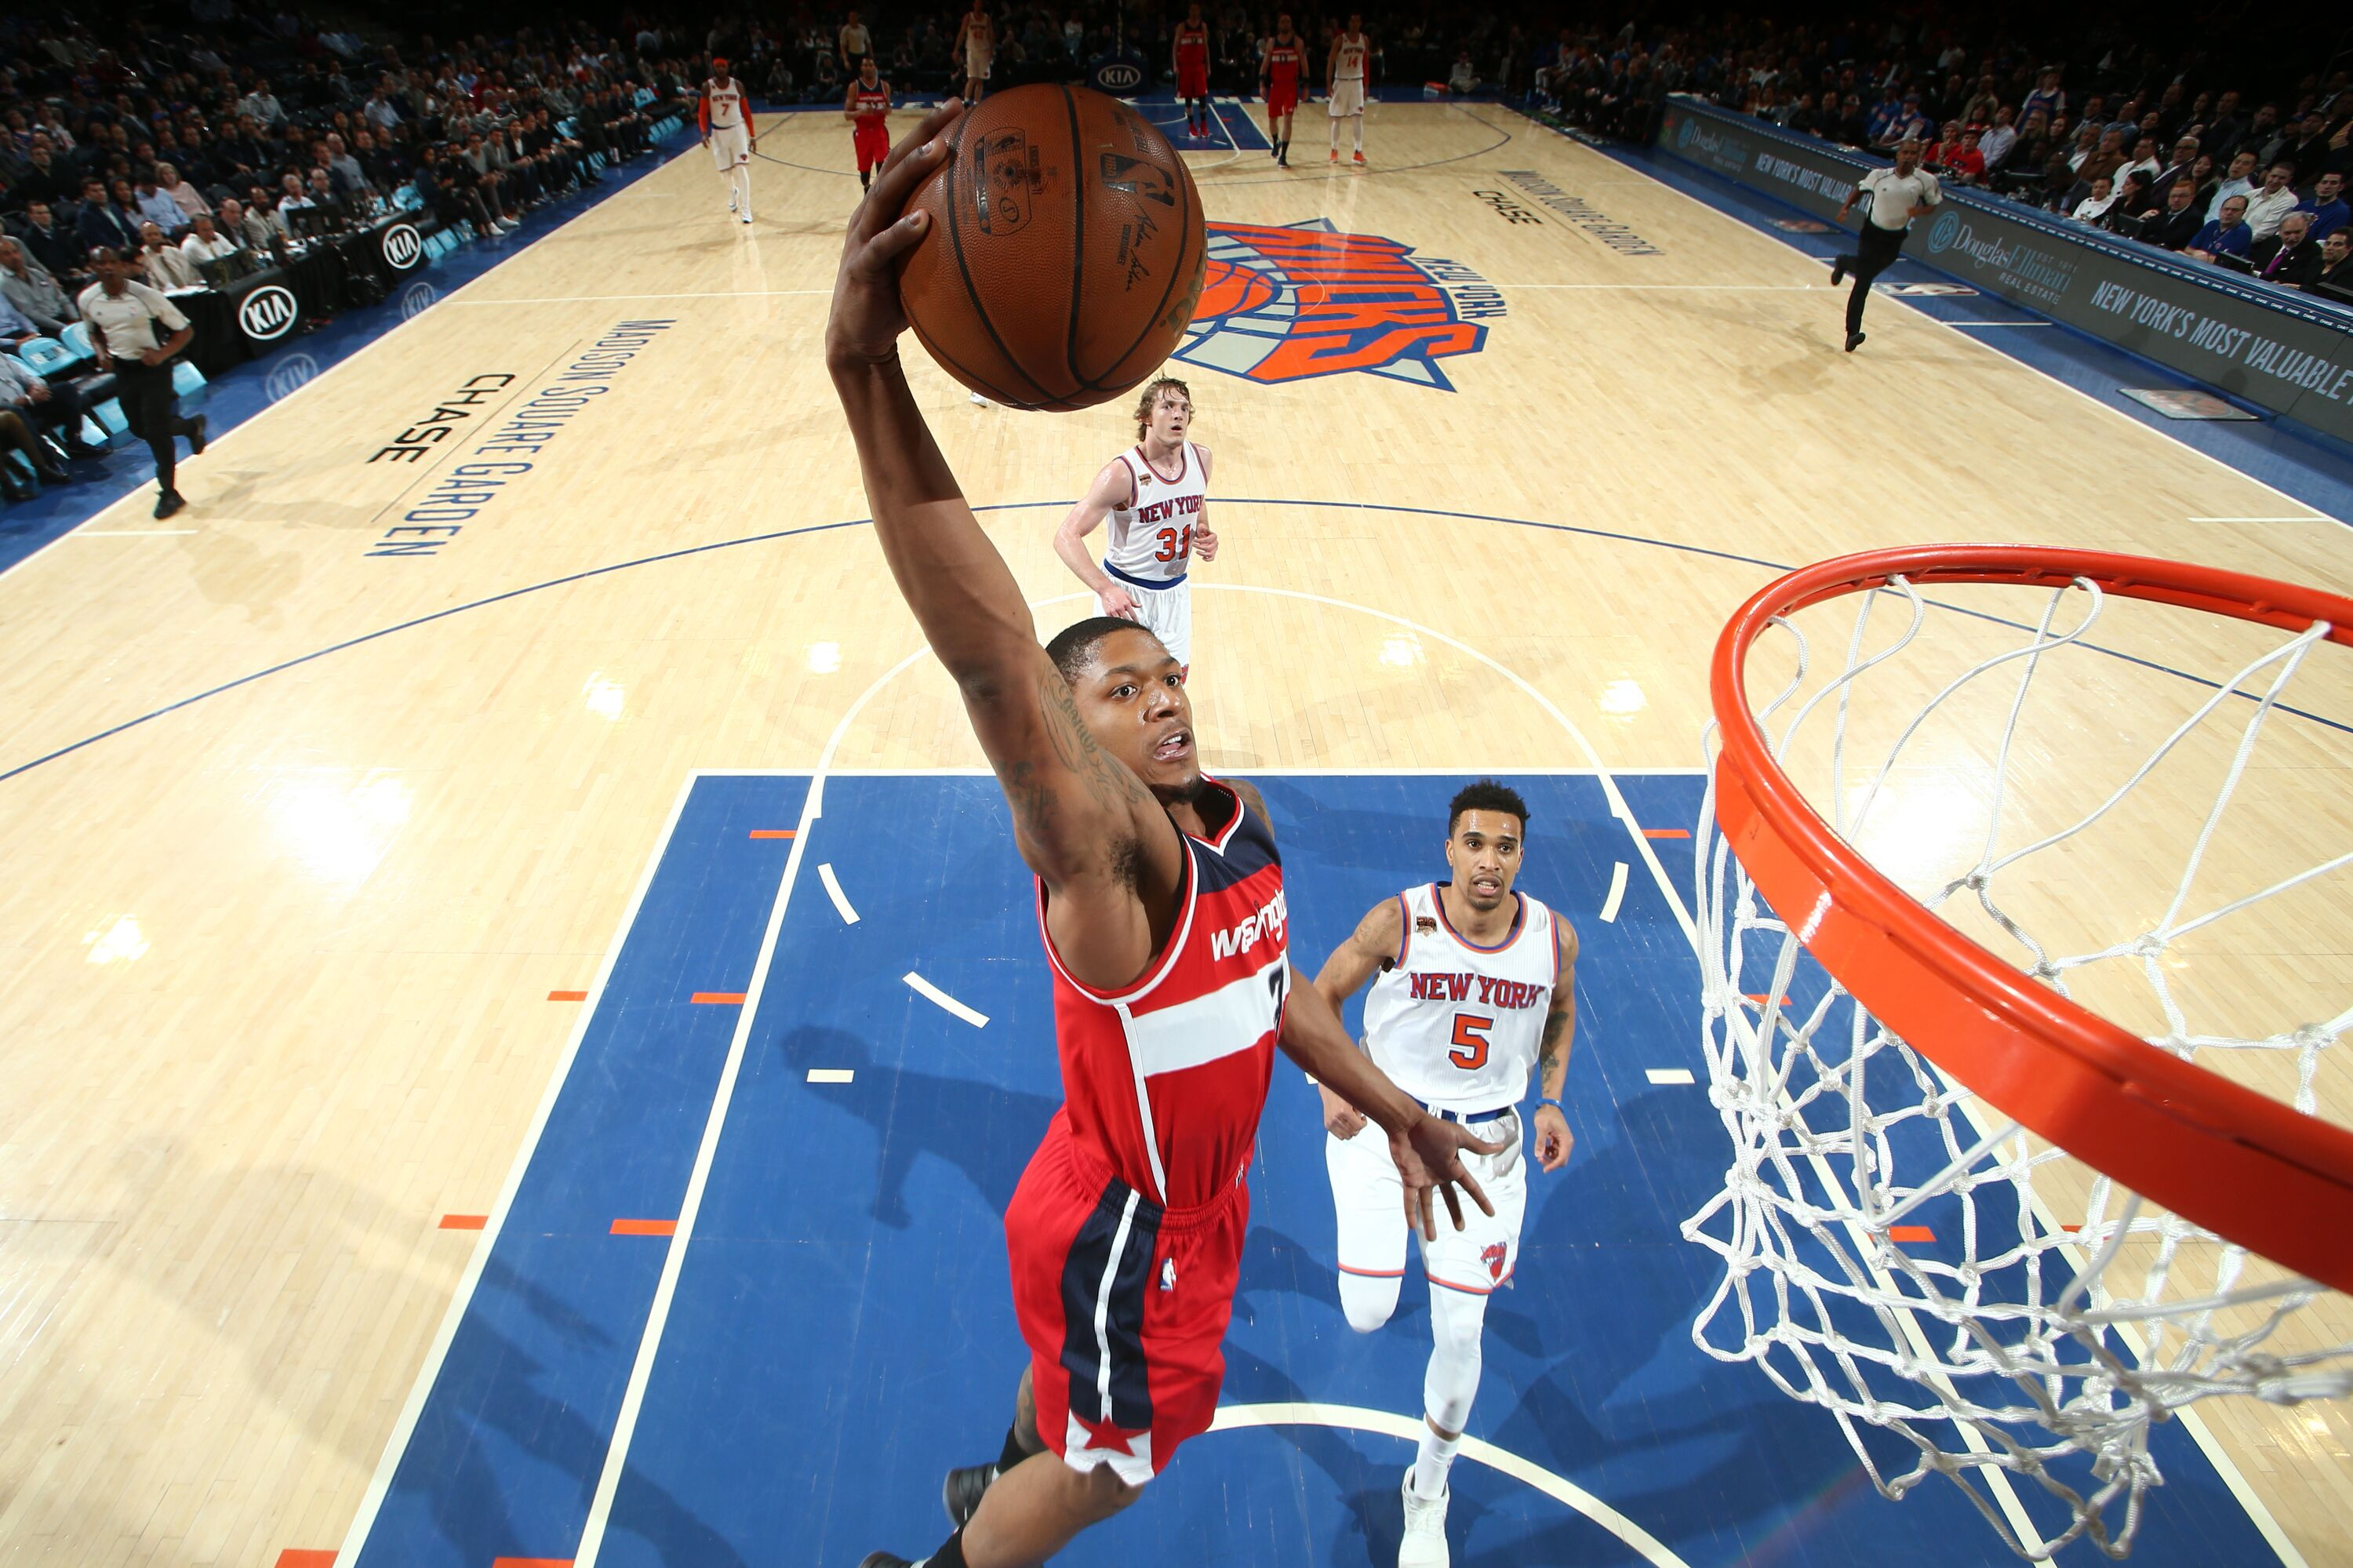 665459204-washington-wizards-v-new-york-knicks.jpg